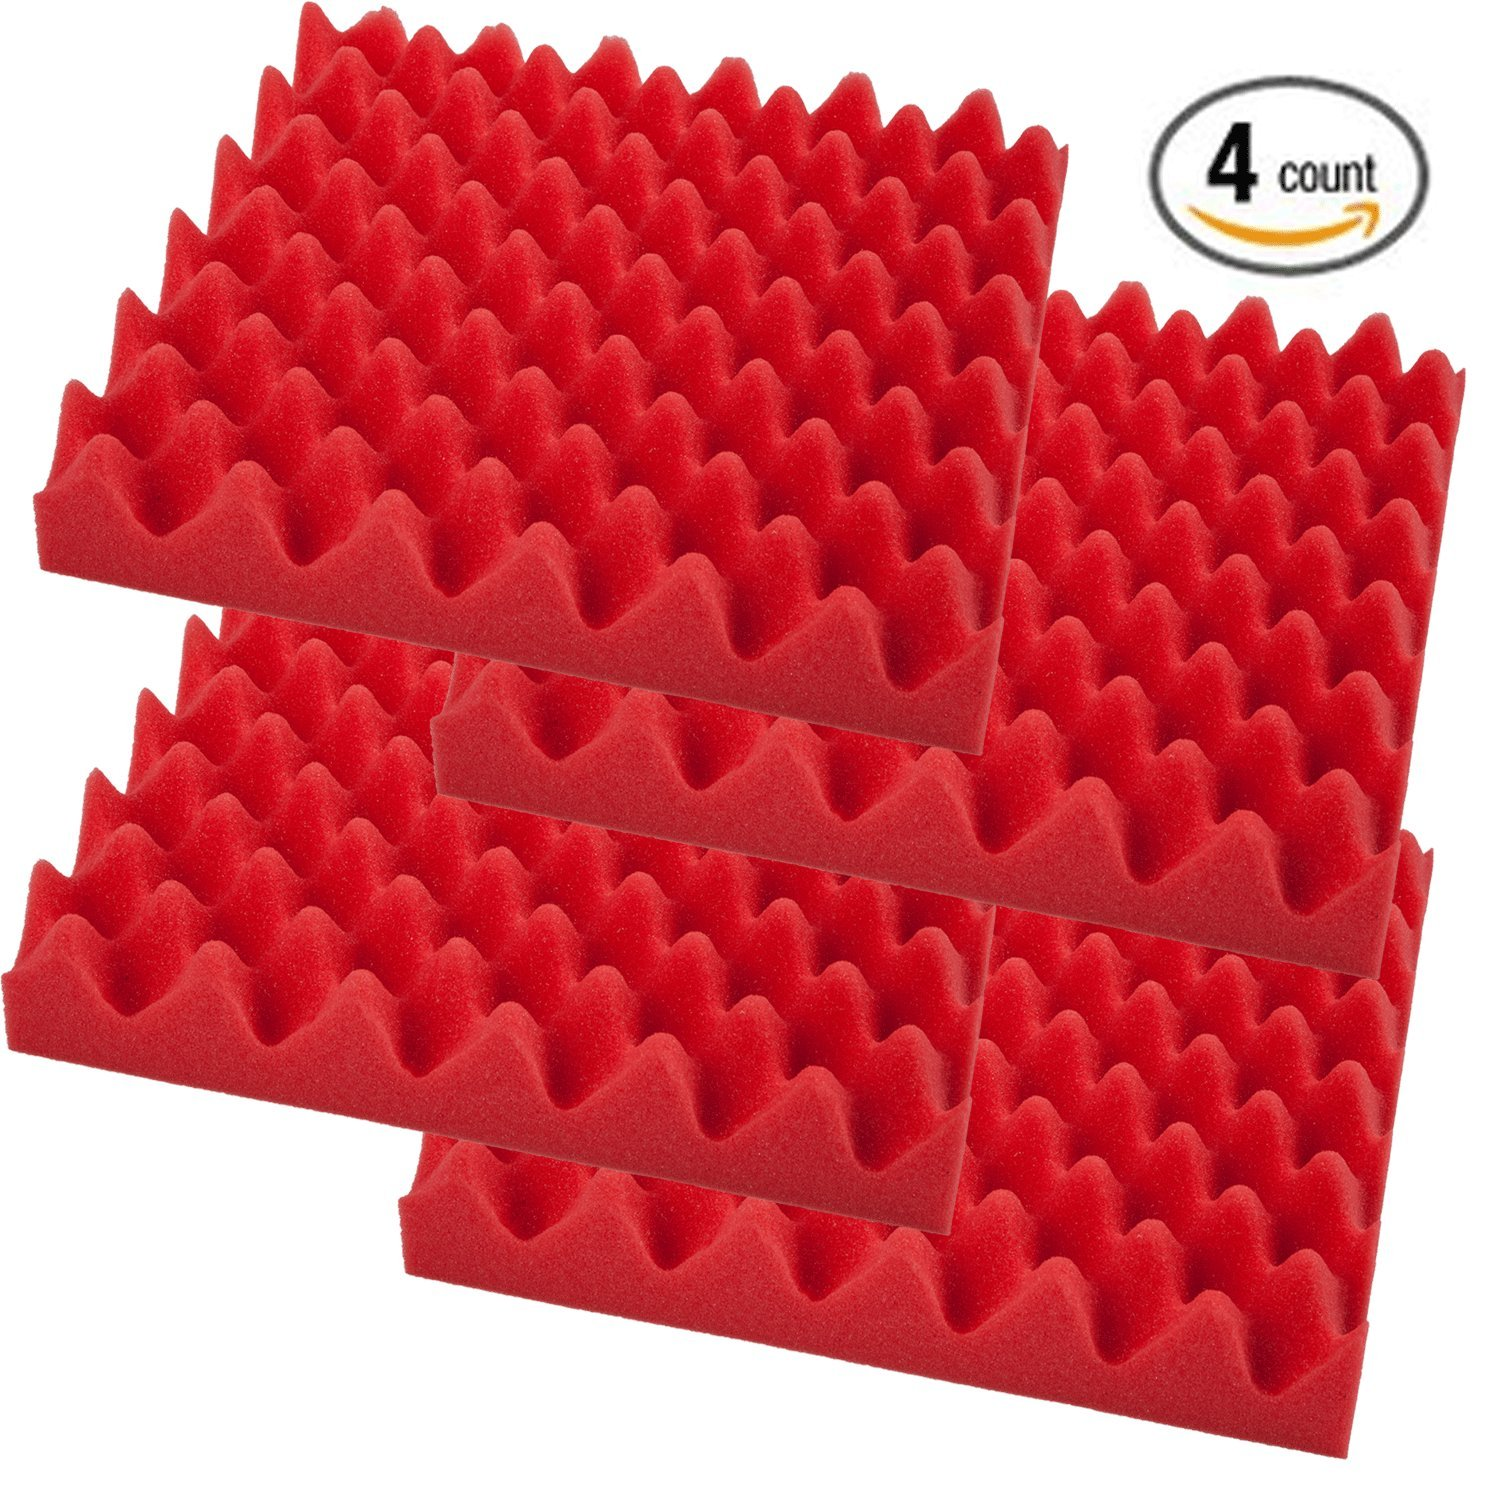 2 Pack- Acoustic Panels Studio Foam Convoluted 2.5 X 12 X 12 Sound TilesEgg Crate Foamily 2packEgg